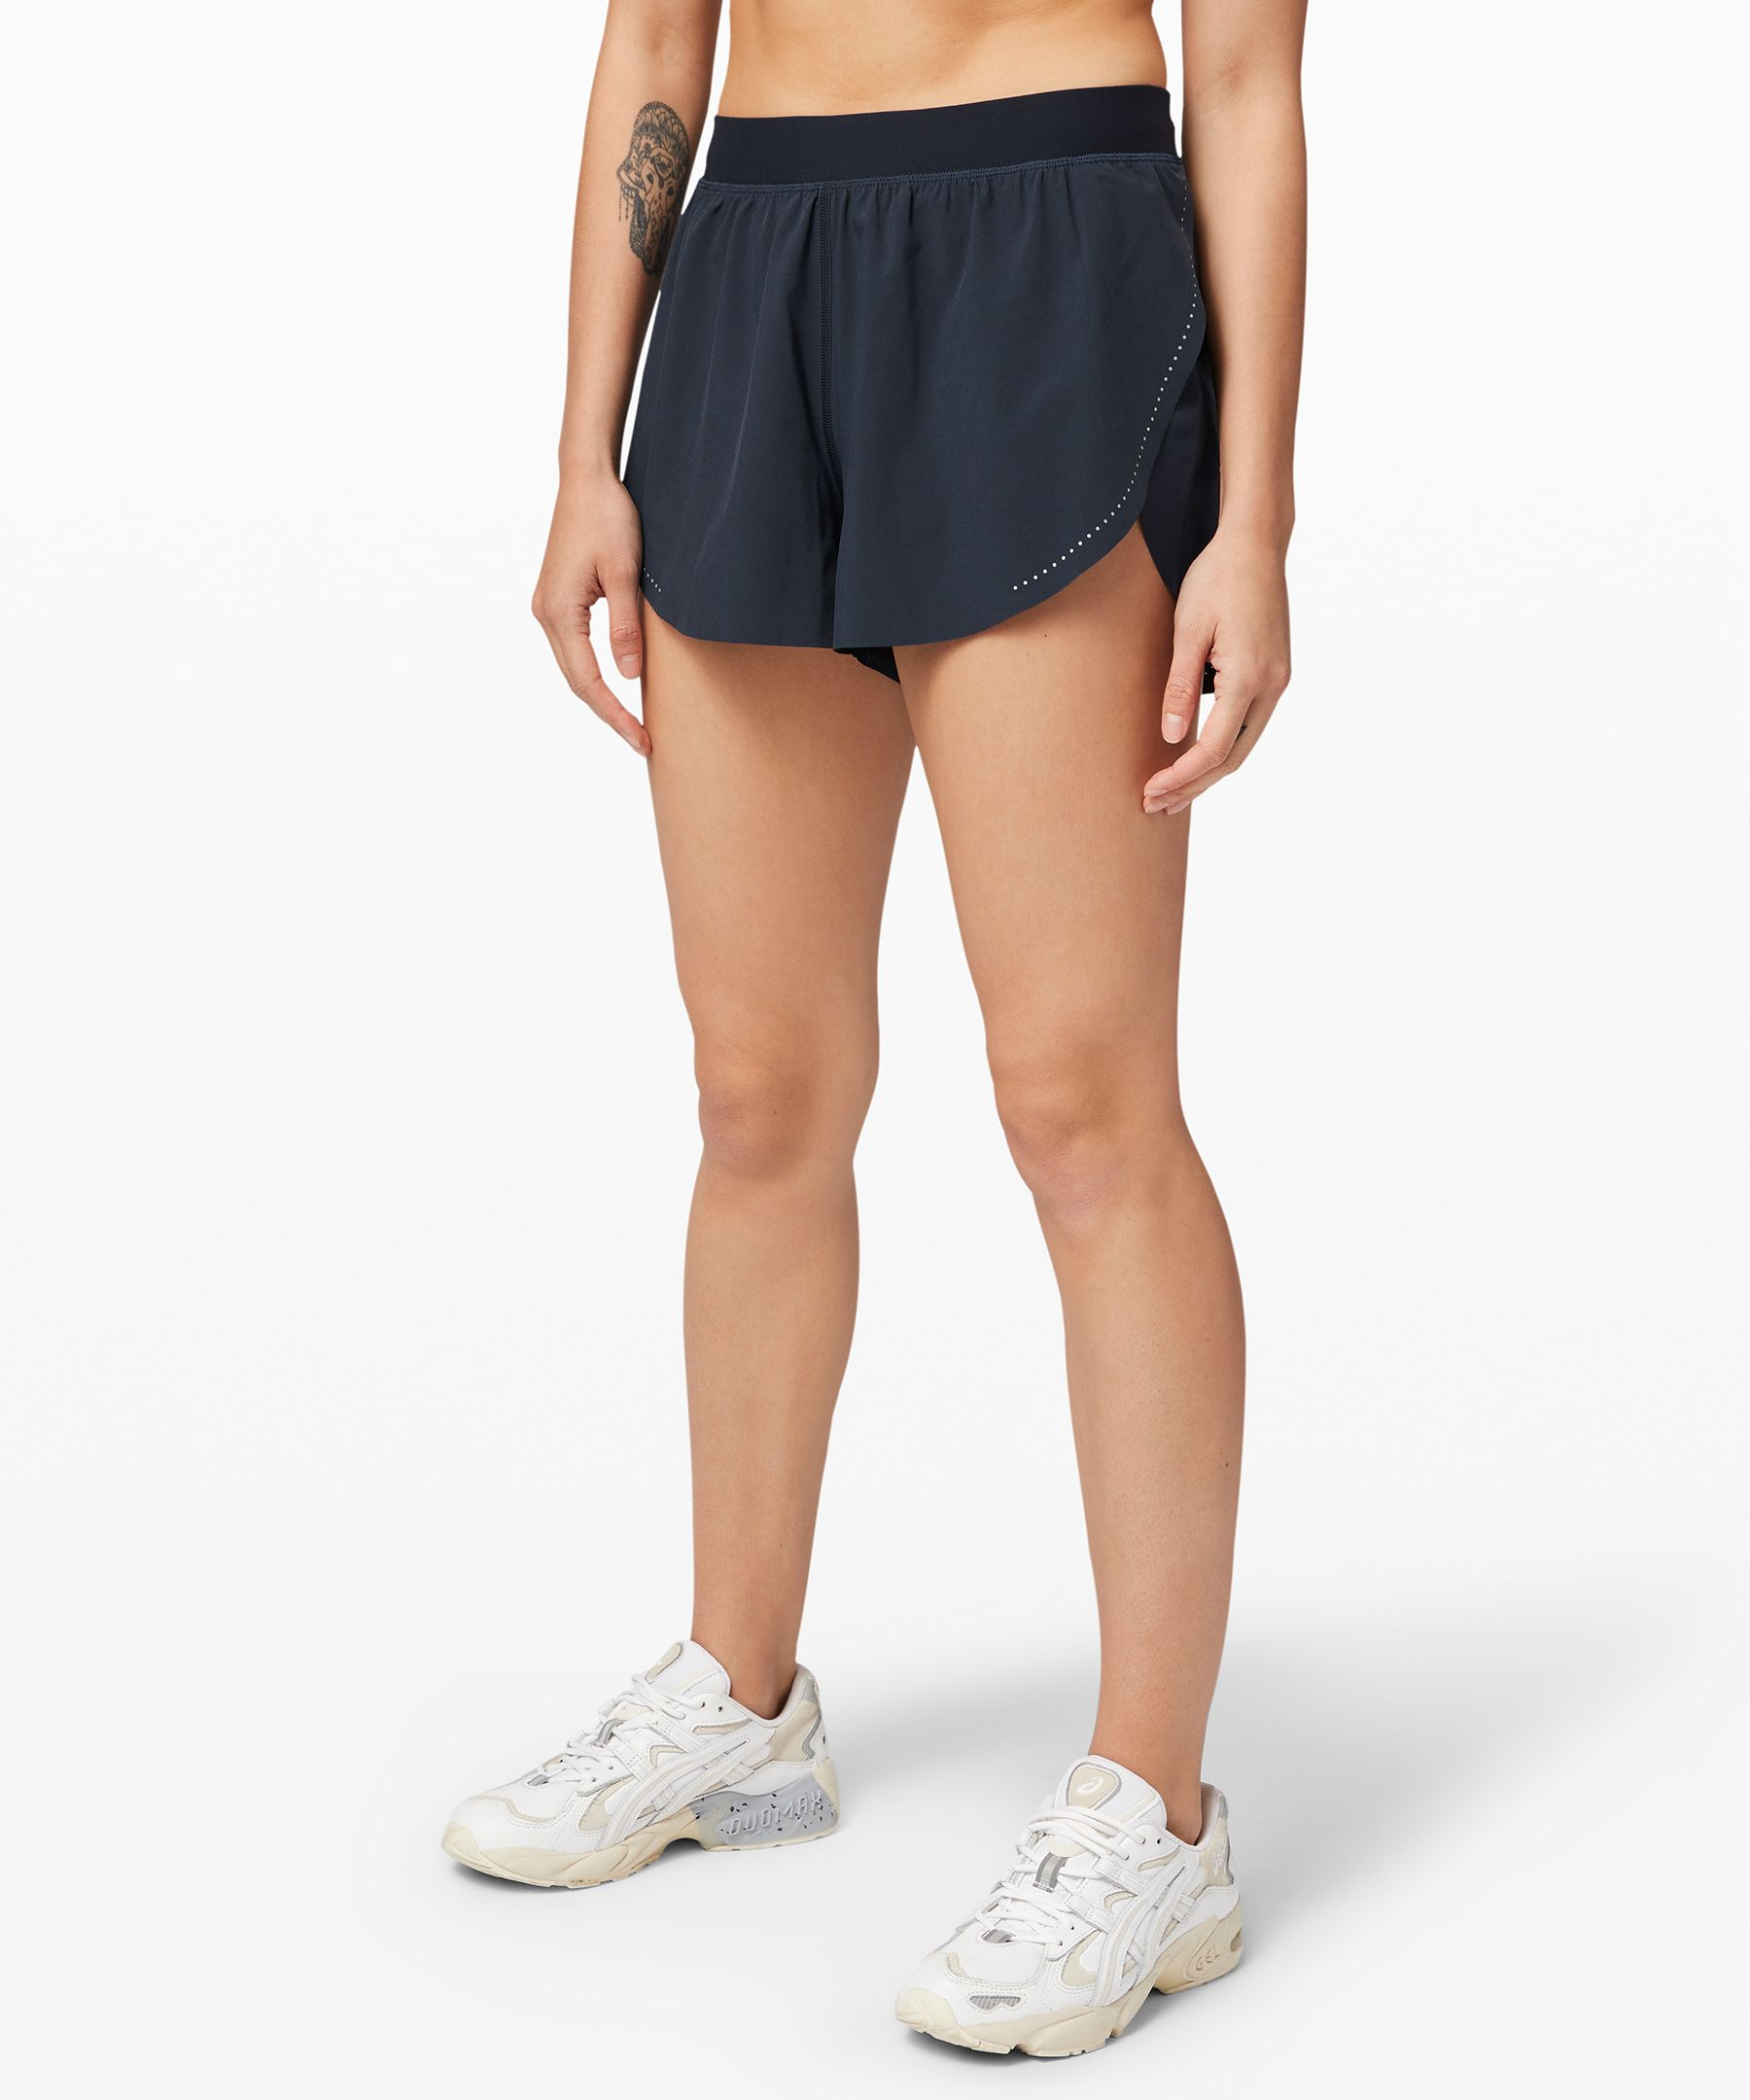 Hit the ground running as you  train for race day in these  super-breathable shorts. Side  slits offer ventilation and  mobility while perforated  fabric at the back keeps the  air flowing as you run.